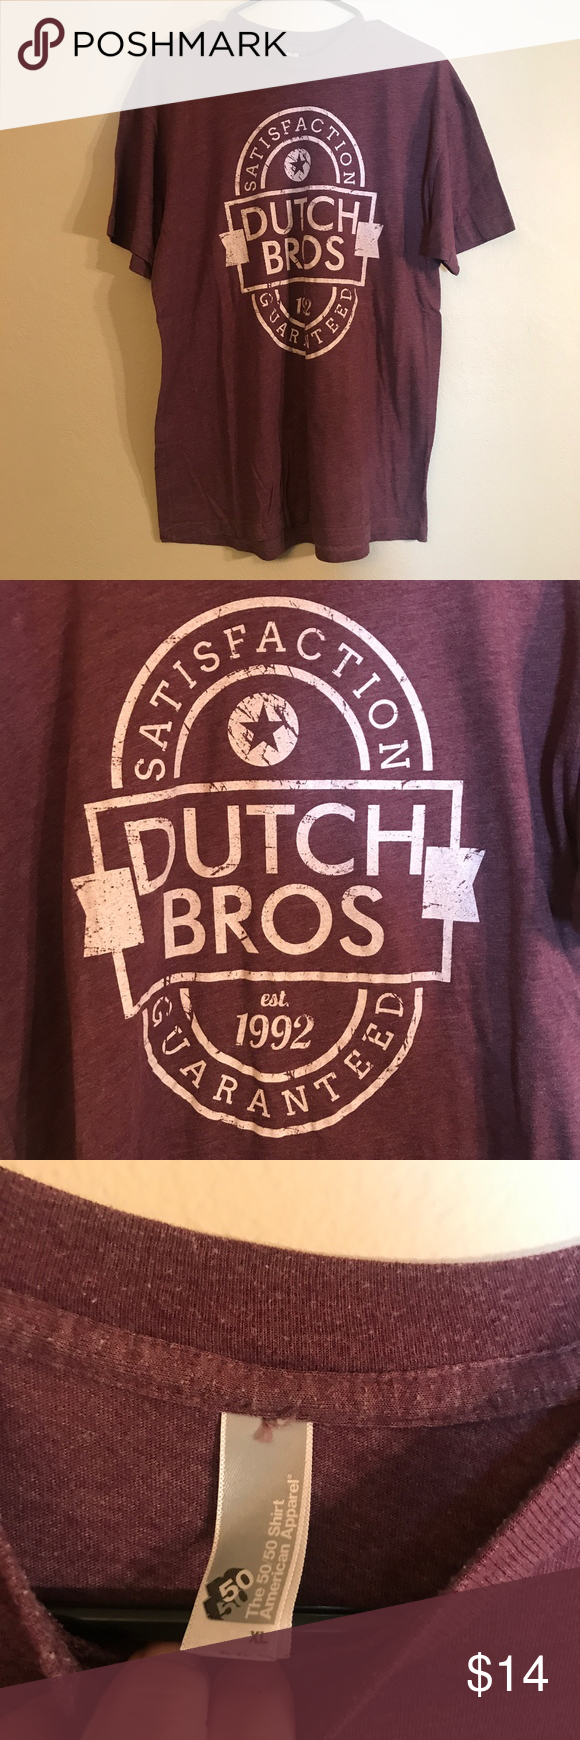 Purple Dutch Bros Satisfaction Guaranteed Tee Great condition. Dutch Bros Tops Tees - Short Sleeve #dutchbros Purple Dutch Bros Satisfaction Guaranteed Tee Great condition. Dutch Bros Tops Tees - Short Sleeve #dutchbros Purple Dutch Bros Satisfaction Guaranteed Tee Great condition. Dutch Bros Tops Tees - Short Sleeve #dutchbros Purple Dutch Bros Satisfaction Guaranteed Tee Great condition. Dutch Bros Tops Tees - Short Sleeve #dutchbros